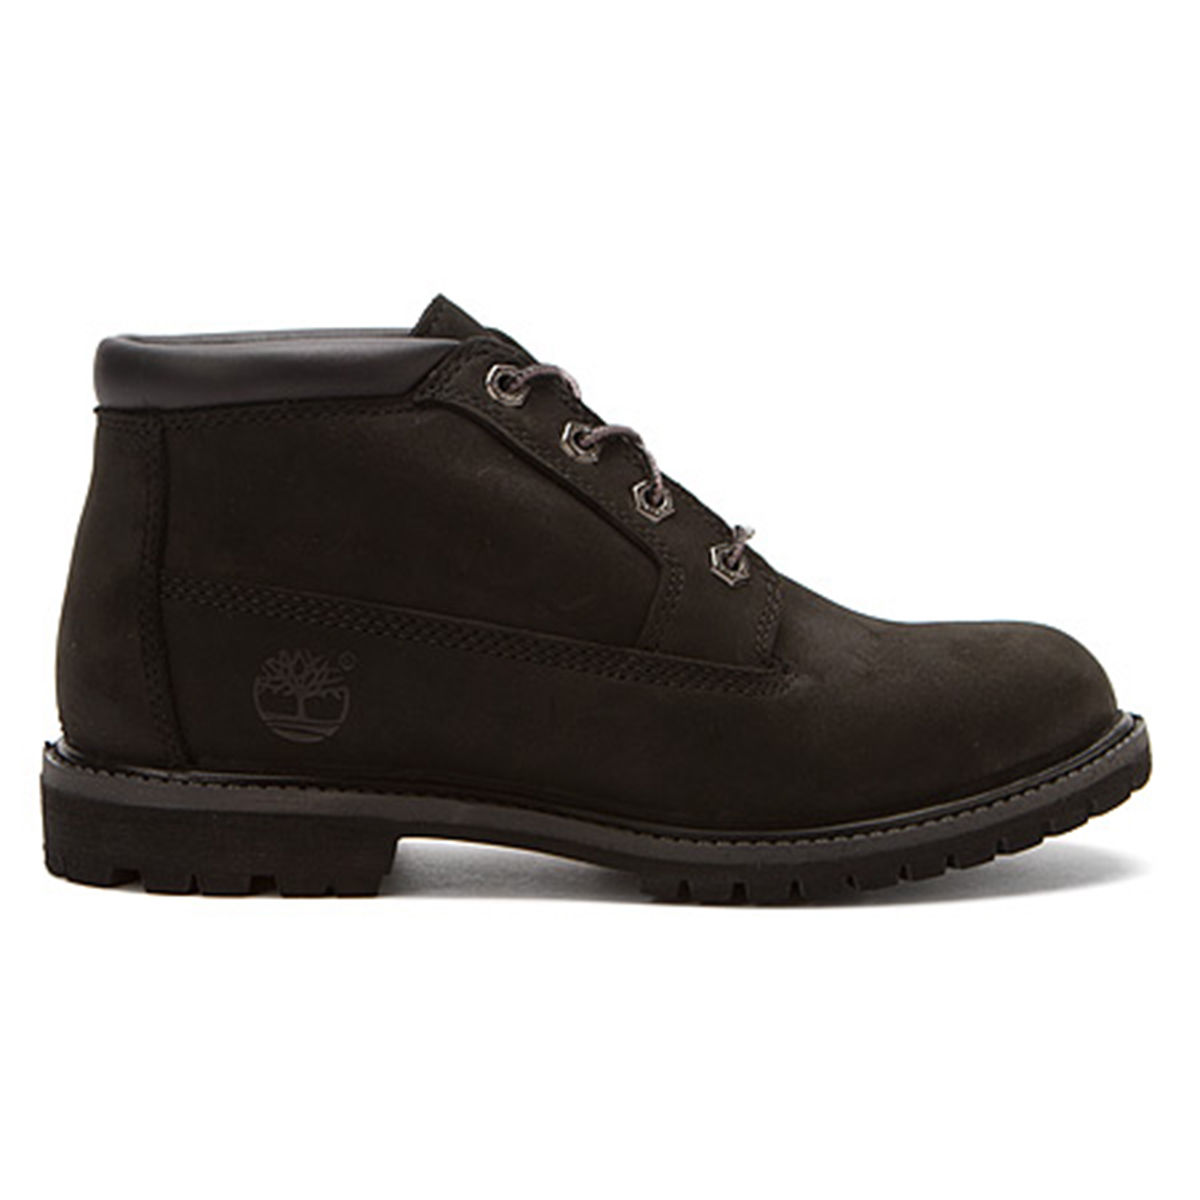 Timberland Earthkeepers Nellie Chukka Double Womens Waterproof Boot